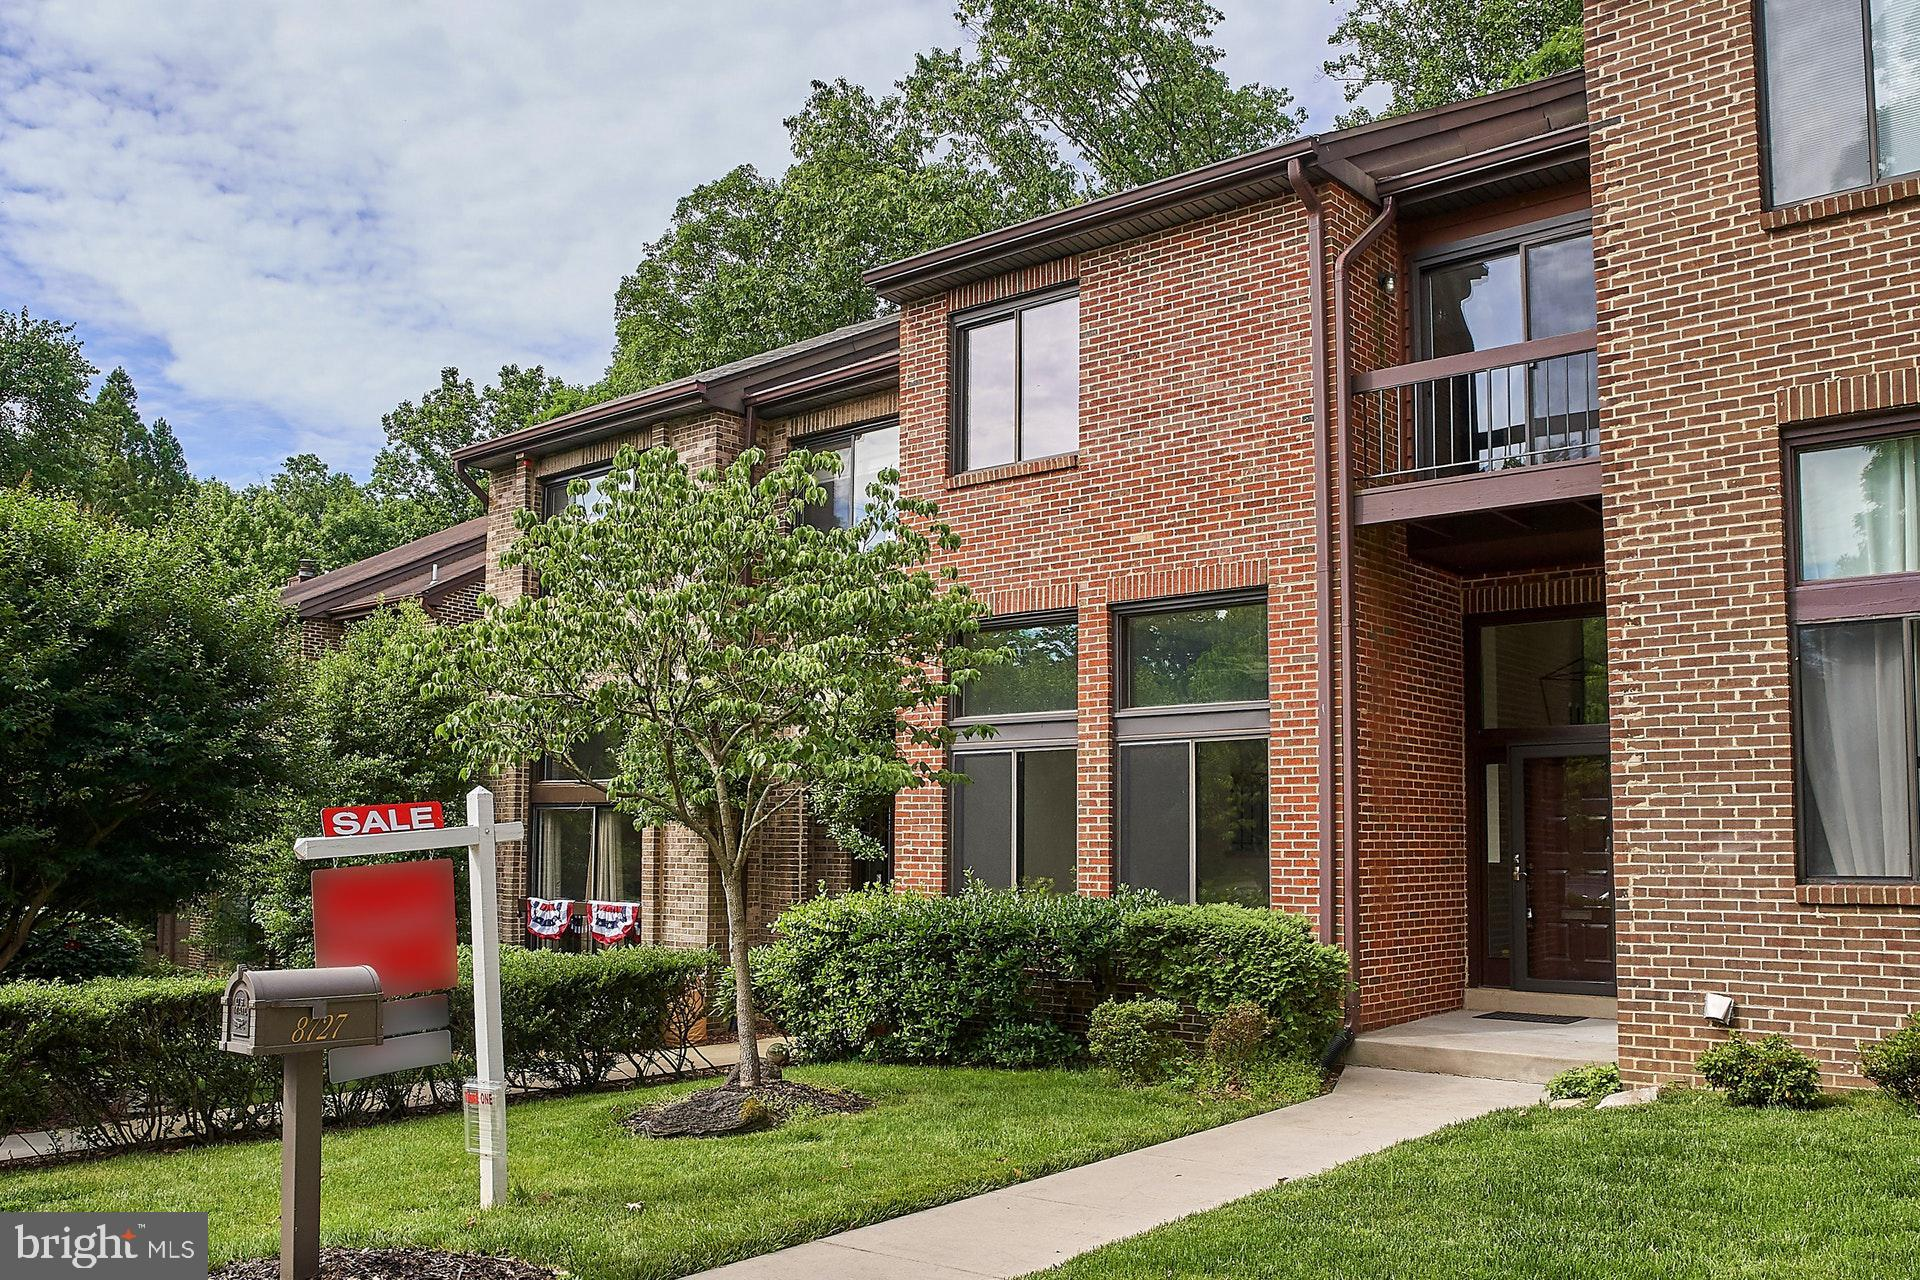 Stunning 5-level all-brick townhome tucked away in back of neighborhood on non-thru street backing to woods*Updates galore*New carpet, fresh paint thruout*Sun-drenched rooms*Spacious living room with volume ceiling*Separate dining room*Updated eat-in kitchen with new LG Hi-Macs counters, updated appliances, wine fridge, new flooring and doors to deck overlooking wooded parkland*Generous-sized bedrooms*Master bedroom has walk-in closet plus remodeled bathroom with large, walk-in shower and secluded deck for morning coffee overlooking nature*Laundry on bedroom level*Walkout rec room with gas fireplace and full bath*Unfinished basement great for storage*Two assigned parking spaces + ample guest spaces*Conversion to gas heat/cooking*Close to shopping, eateries, mass transit and more